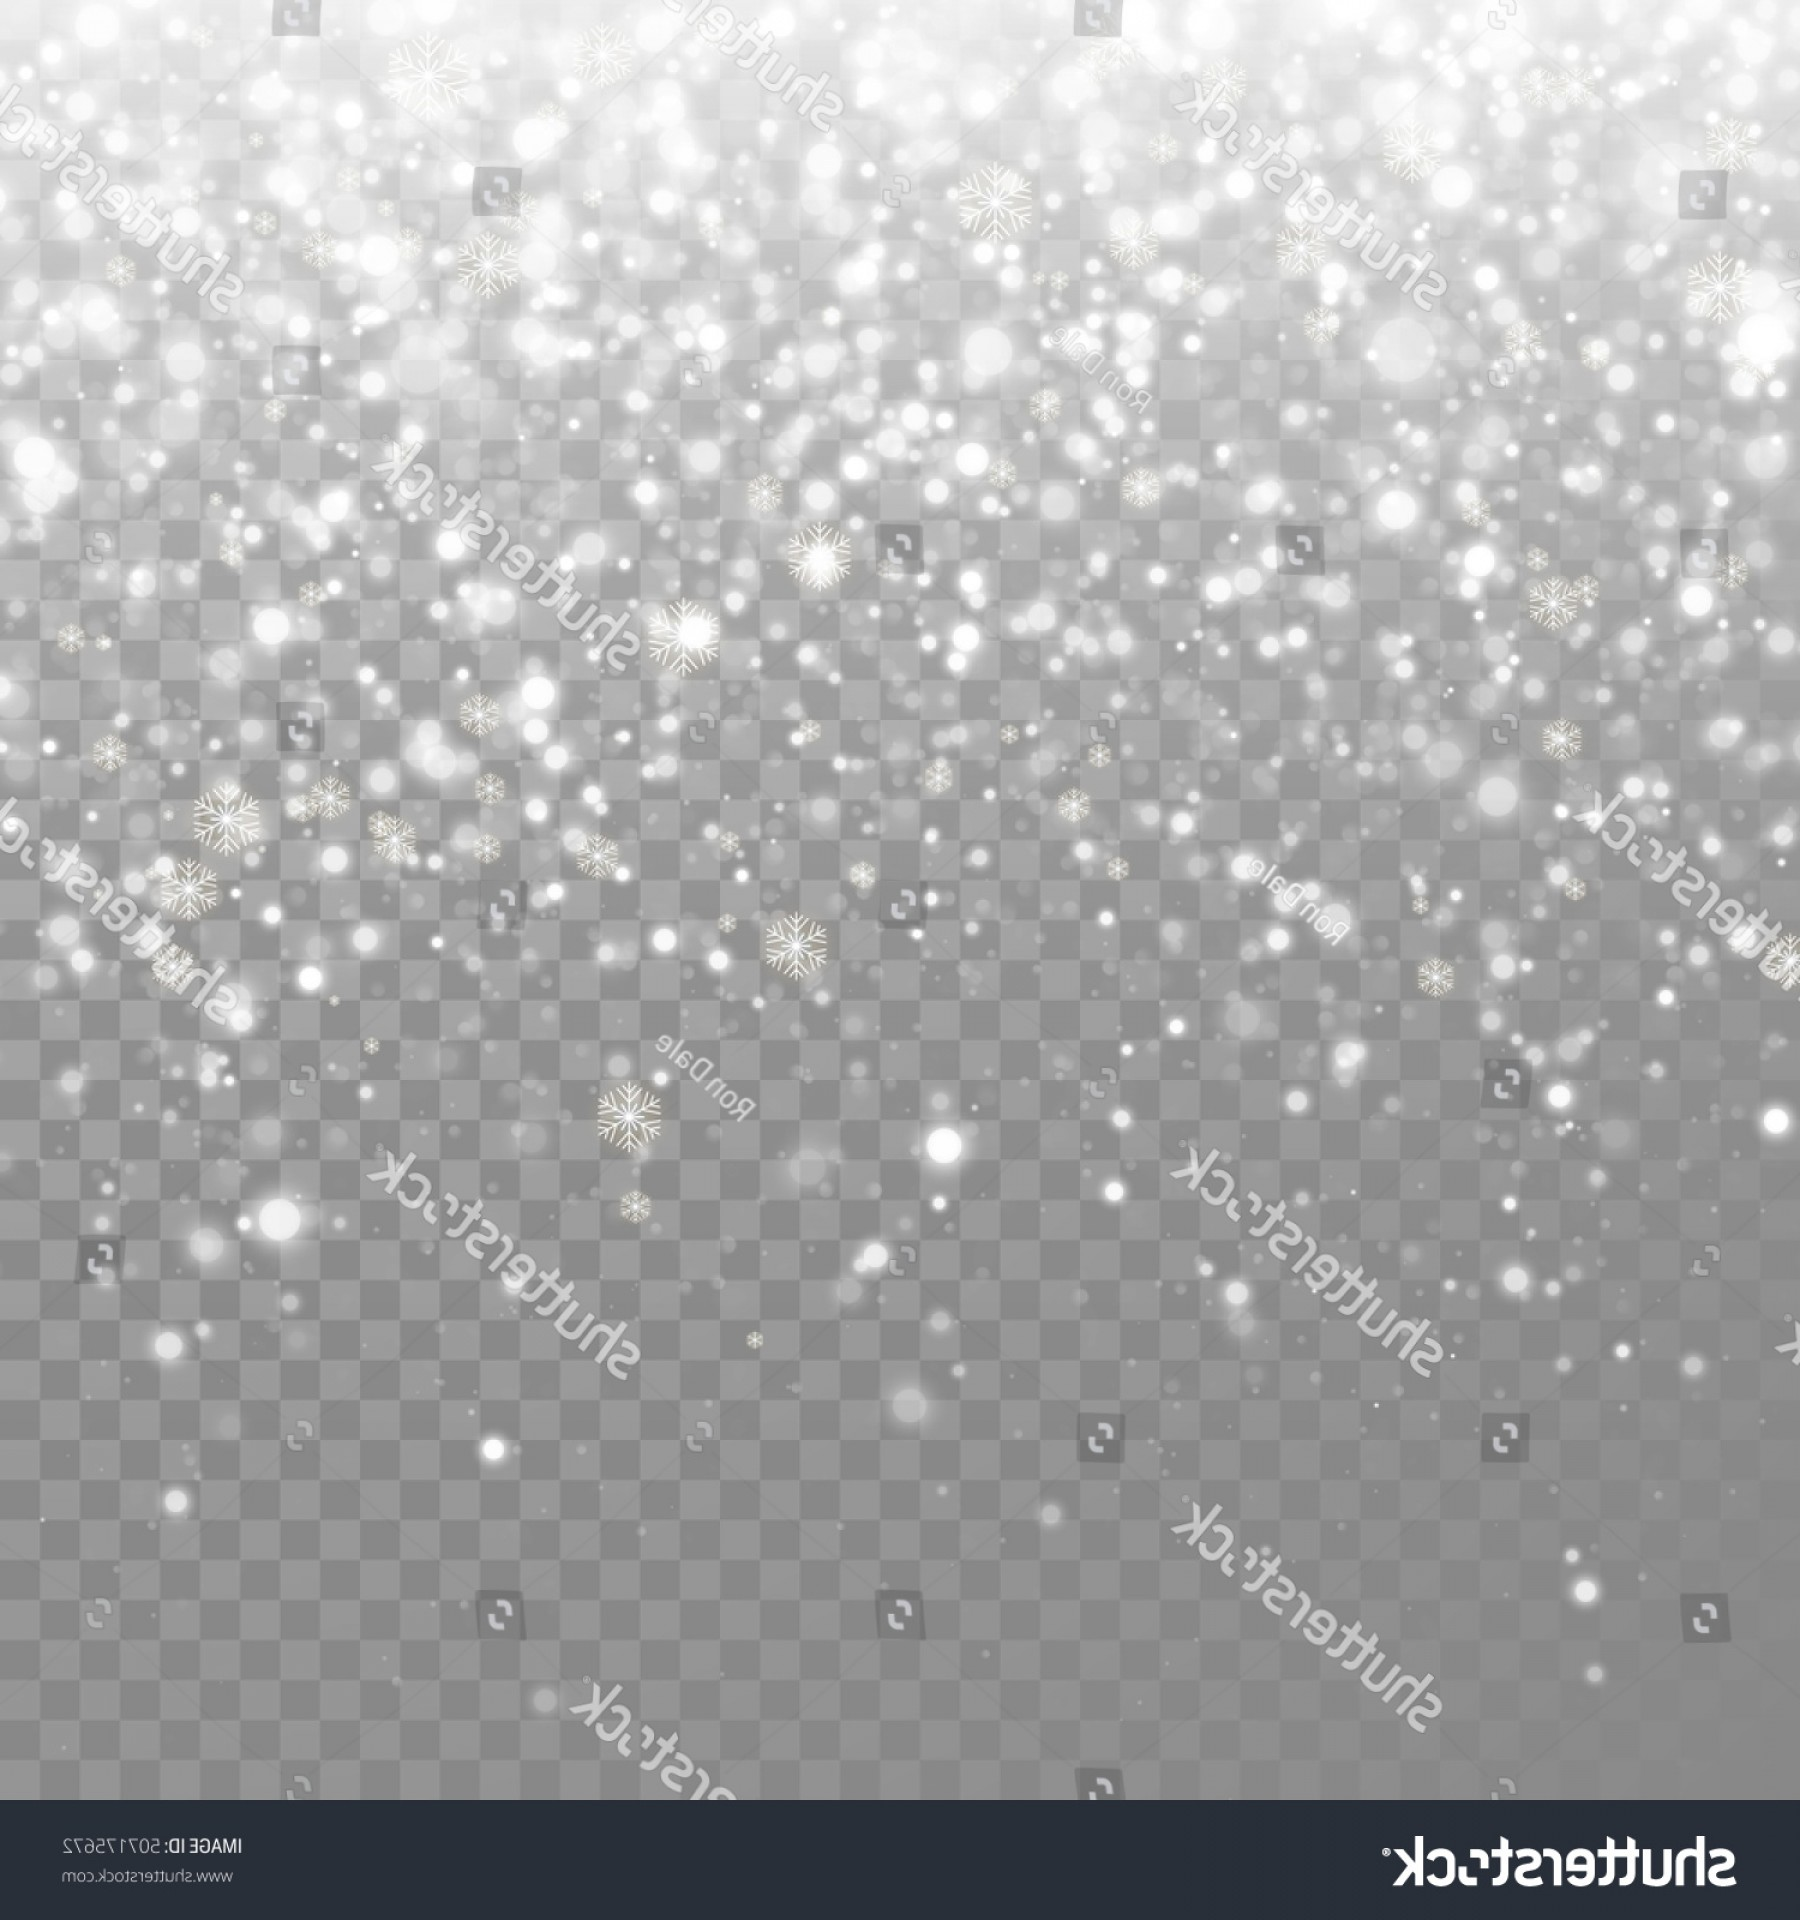 Snow Falling Vector Free: Snow Falling Background Vector Magic Christmas